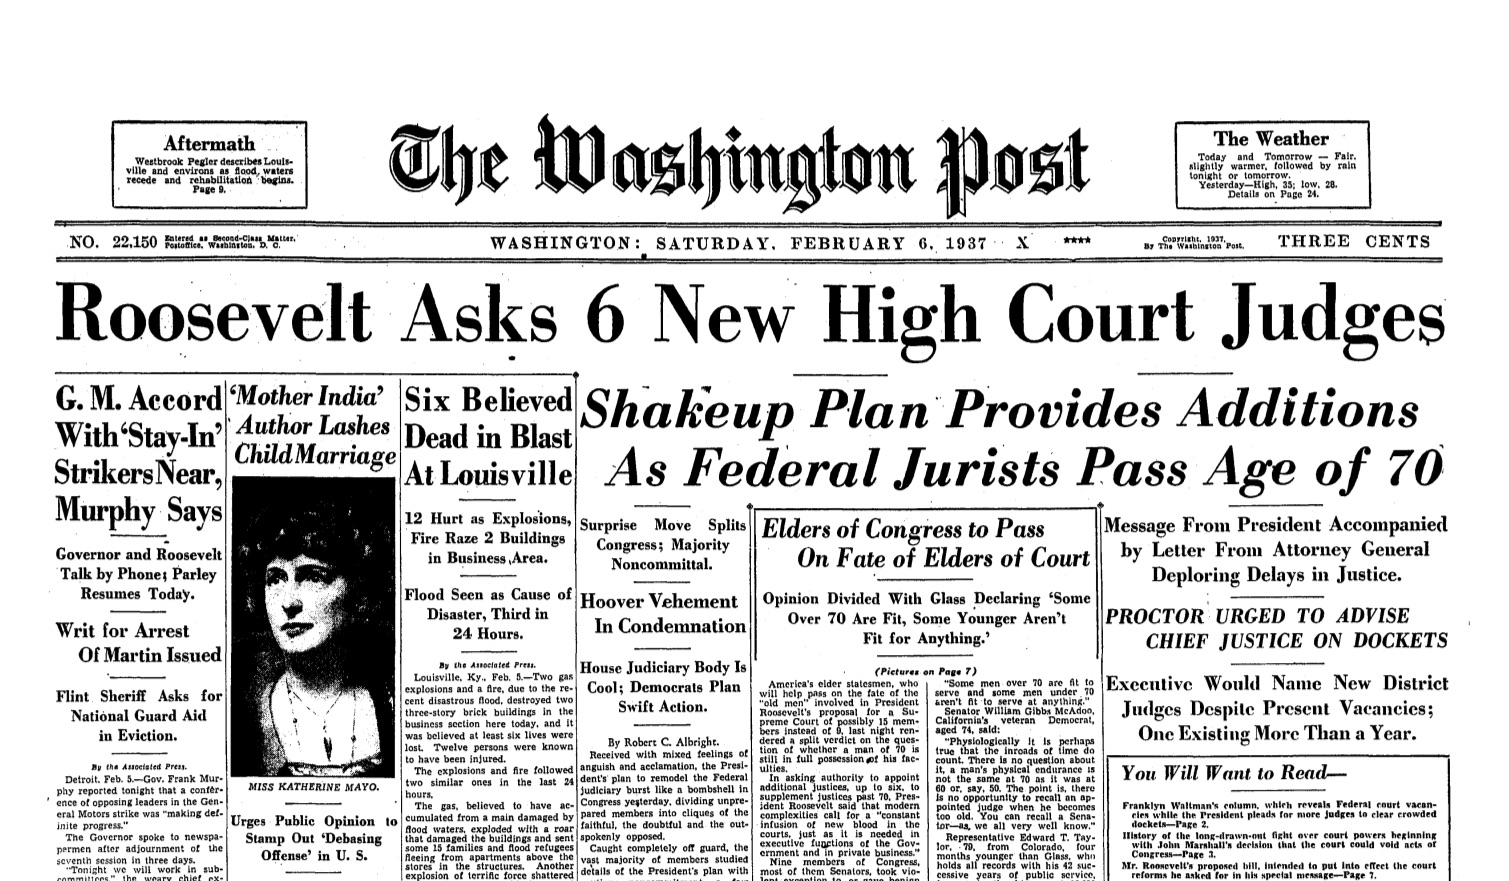 The Post reports on President Franklin D. Roosevelt's plan to expand the size of the Supreme Court. (Washington Post Staff/The Washington Post)